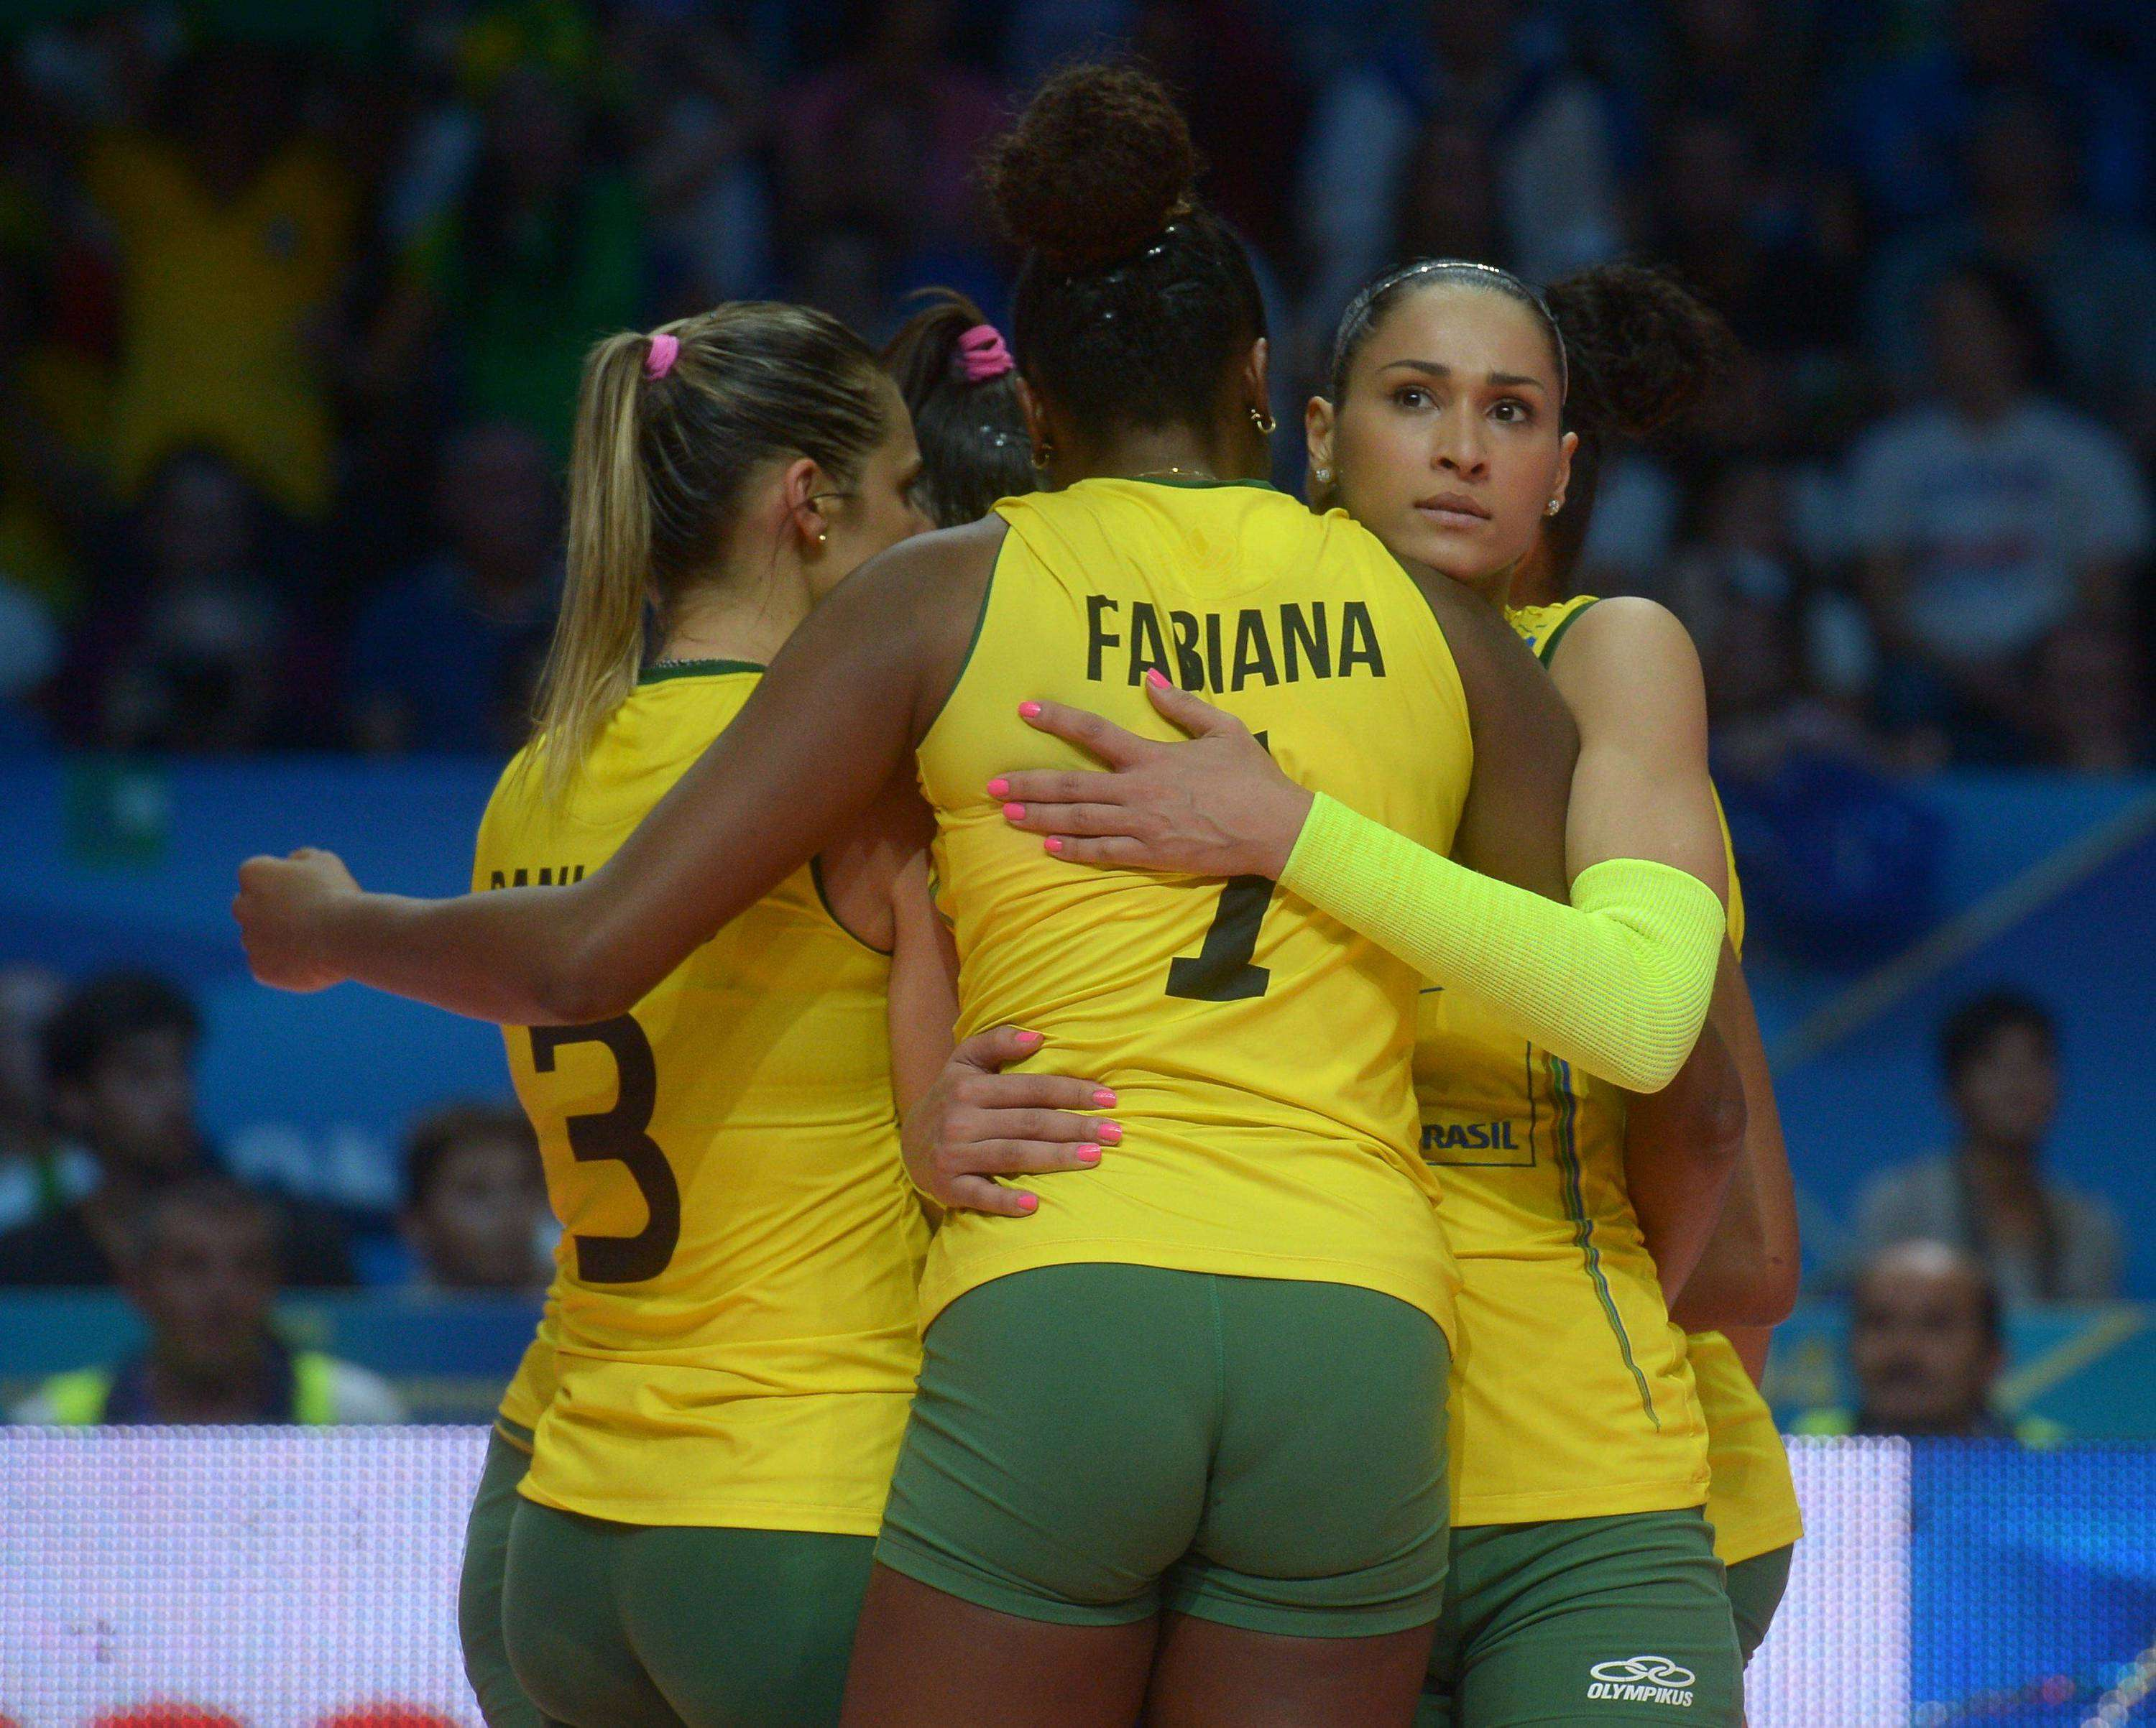 Foto: FIVB/Divulgação